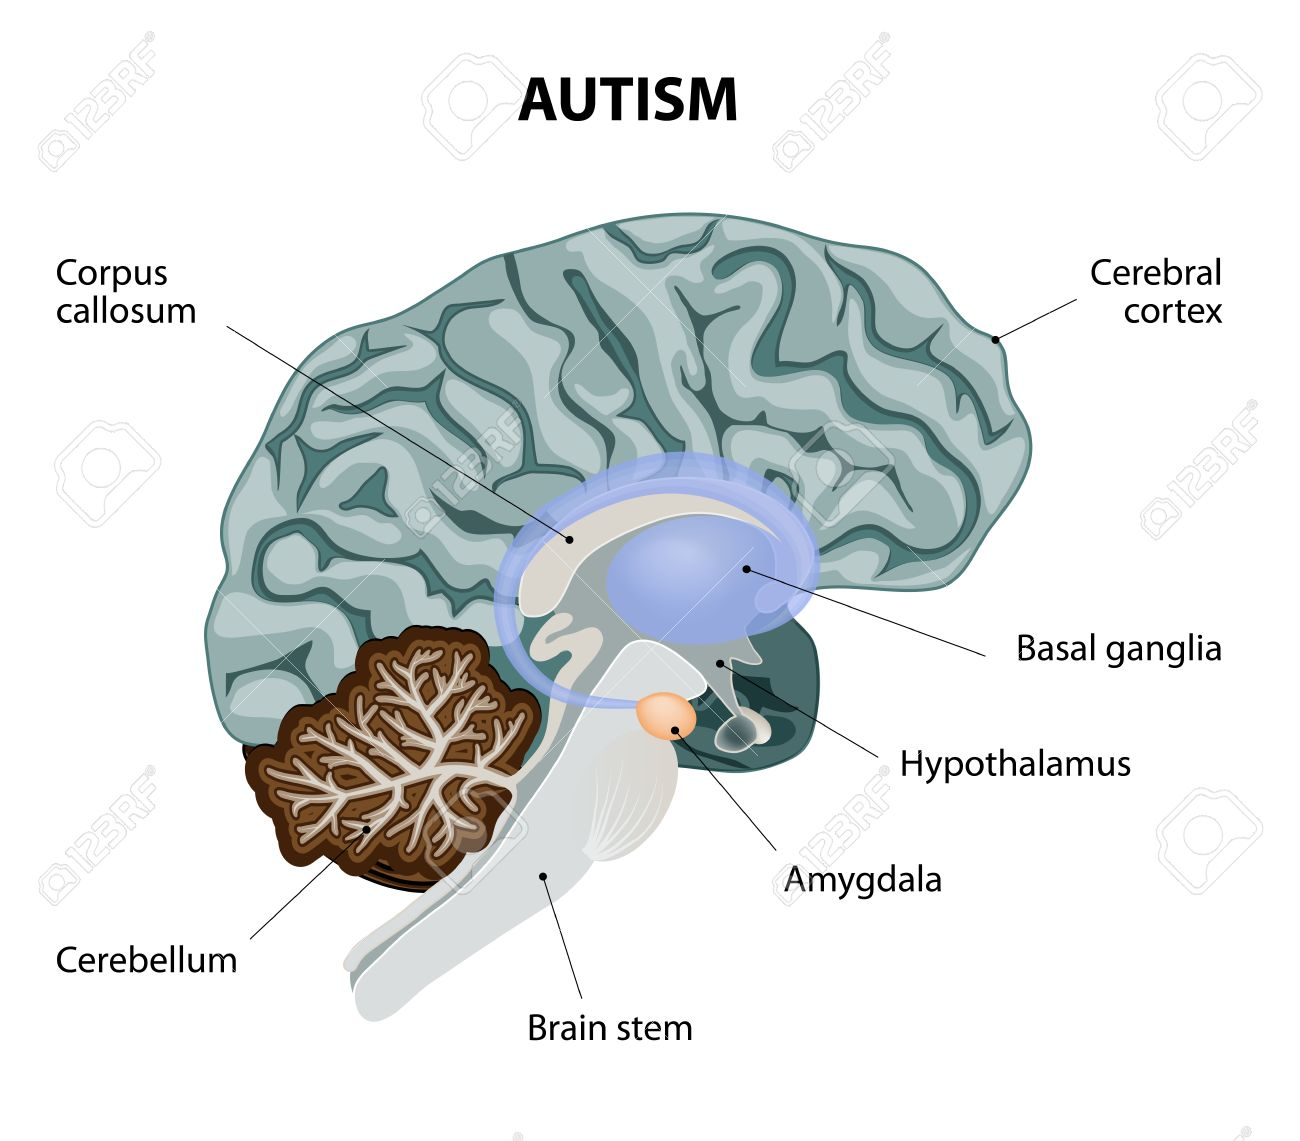 hight resolution of parts of the brain affected by autism vector diagram stock vector 34824339